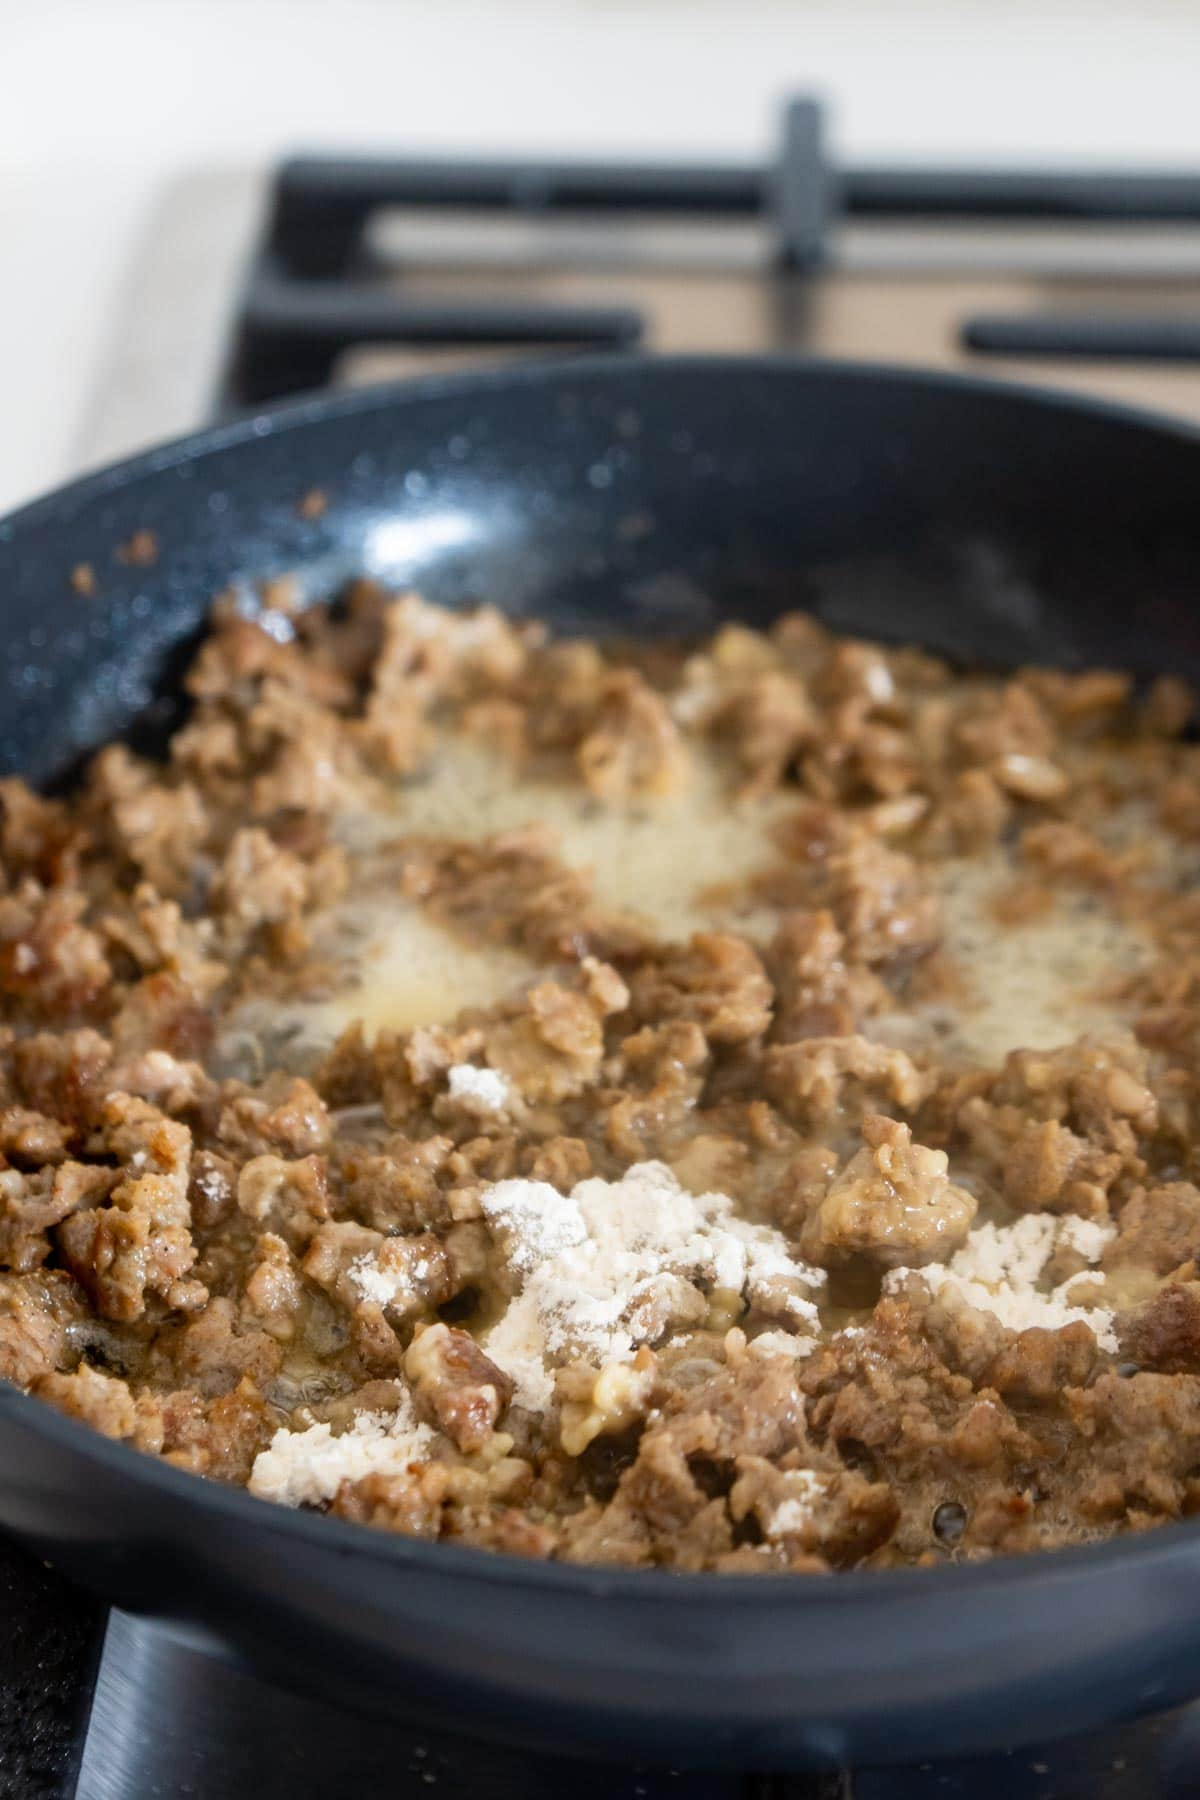 breakfast sausage in a pan with flour